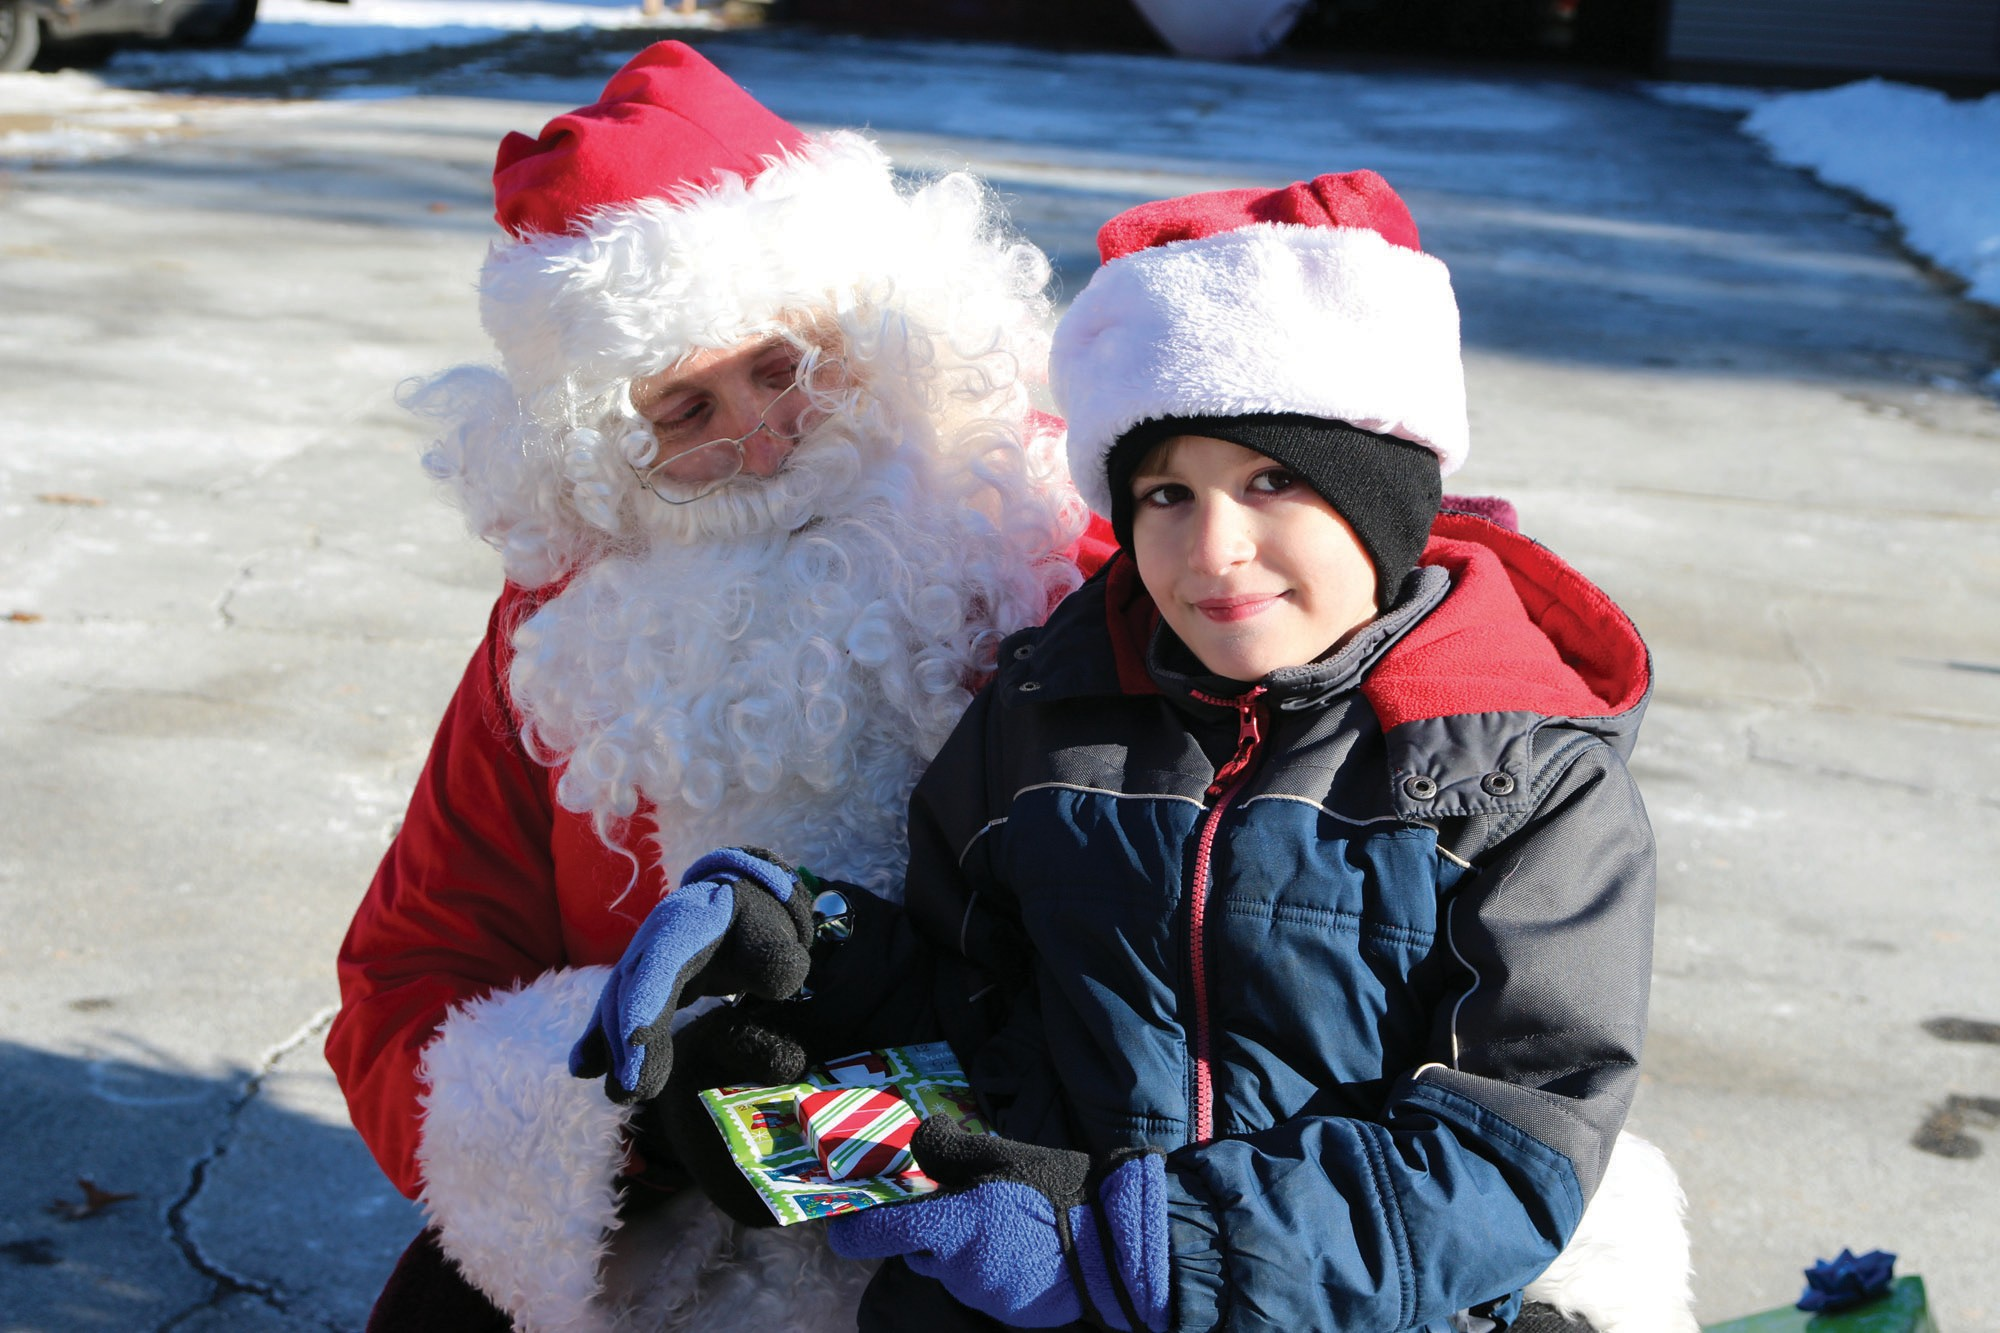 Jacob Riddle of Waterboro has a chat with Santa Saturday during the Riddle family's Christmas open house. The family invited folks from Waterboro and beyond to stop by their home on Old Alfred Road over the weekend to see Santa, meet Mrs. Claus, Frosty, the Christmas Mouse and other holiday characters. //TAMMY WELLS/Journal Tribune